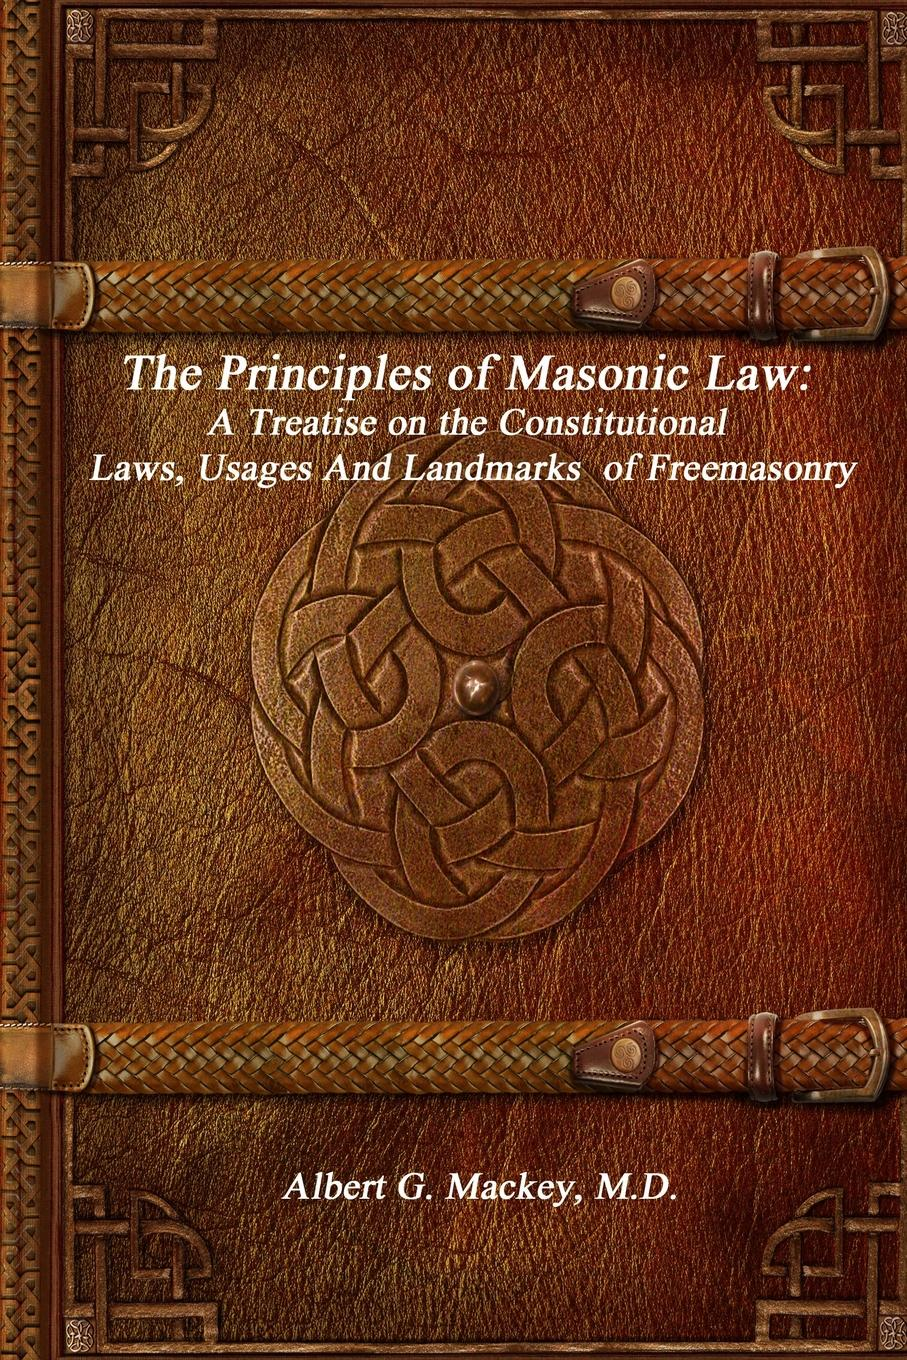 лучшая цена M.D. Albert G. Mackey The Principles of Masonic Law. A Treatise on the Constitutional Laws, Usages And Landmarks of Freemasonry